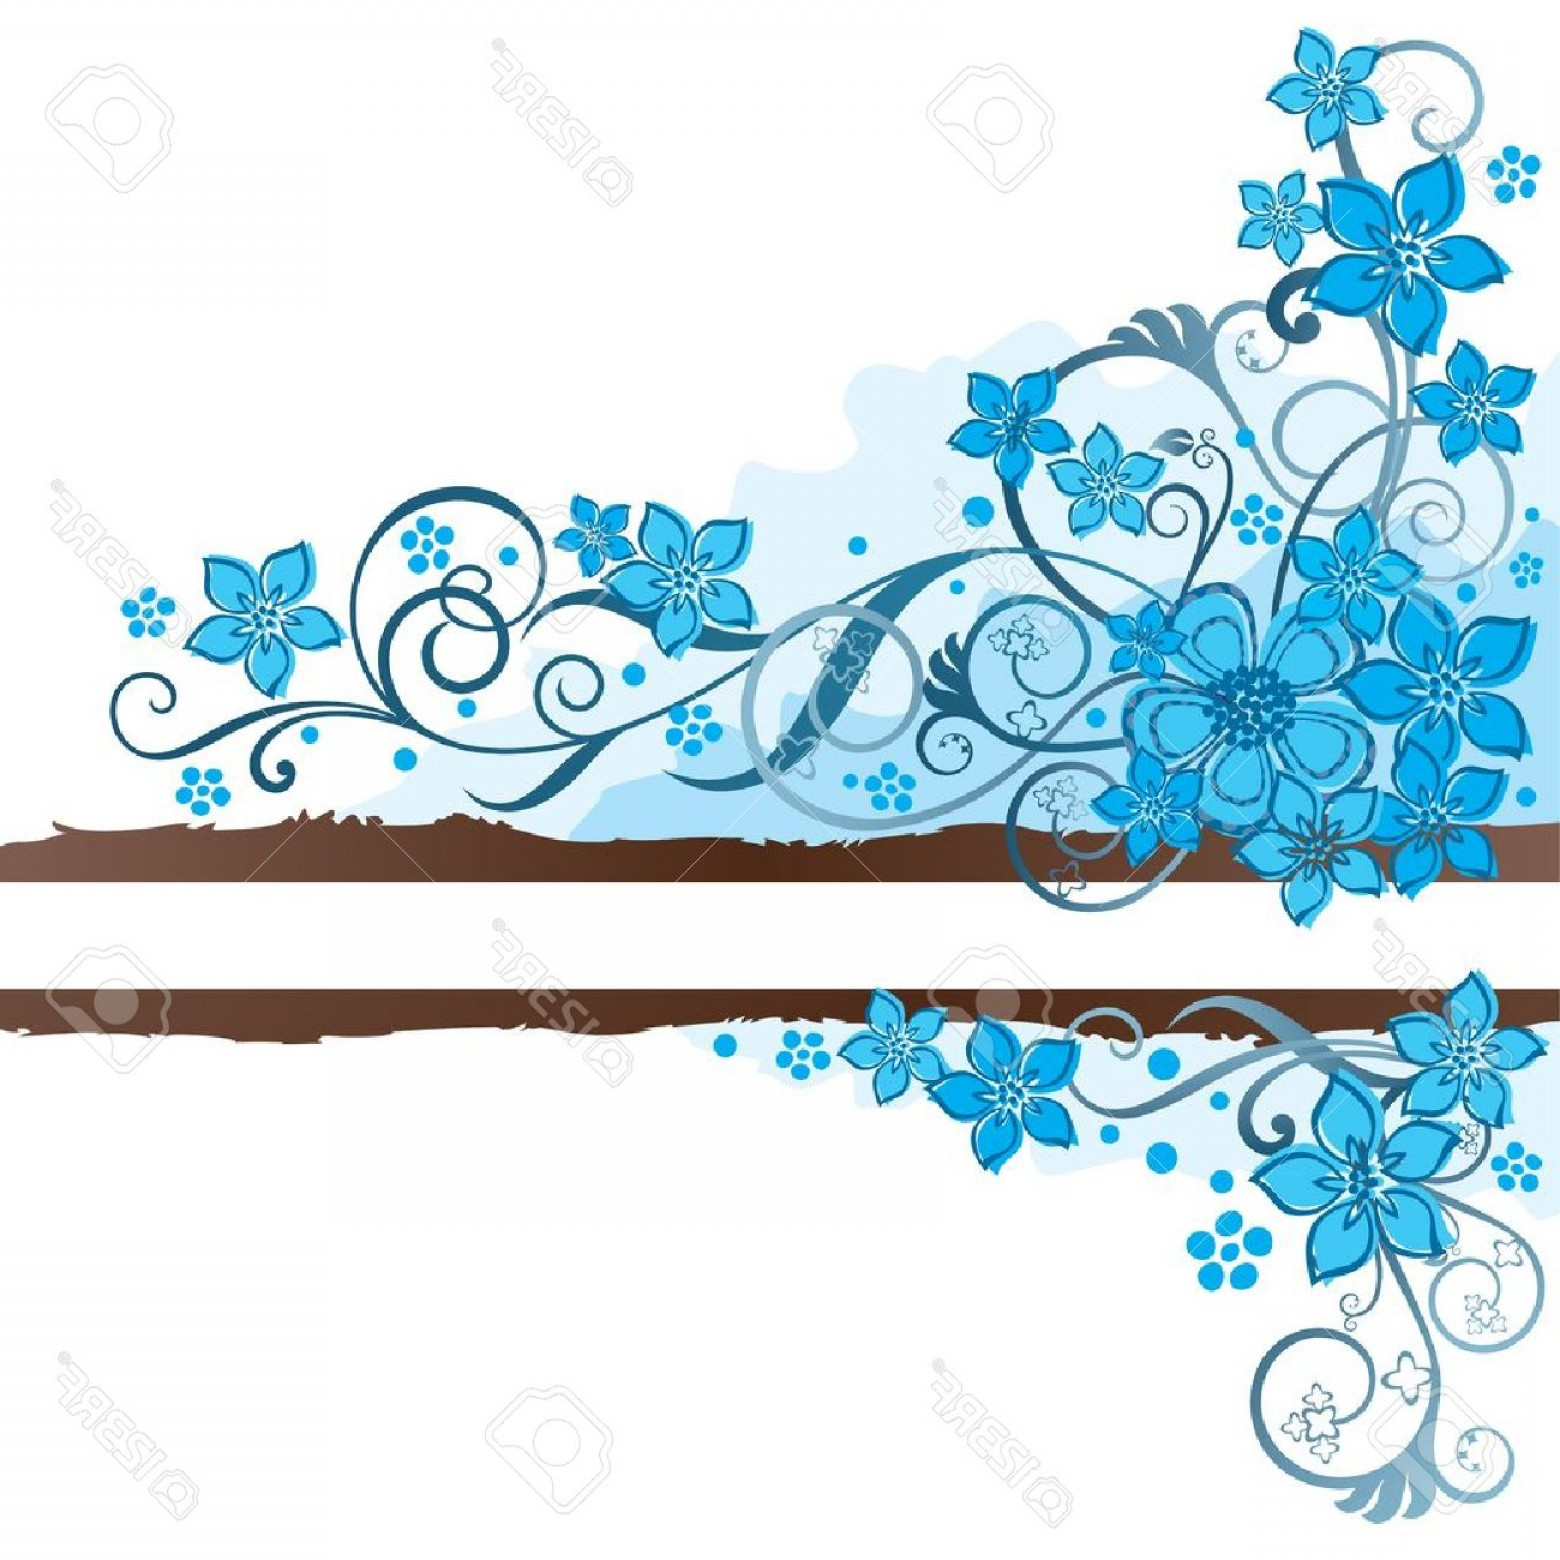 Turquoise Flower Vector: Photobrown Grunge Banner With Turquoise Flowers And Swirls